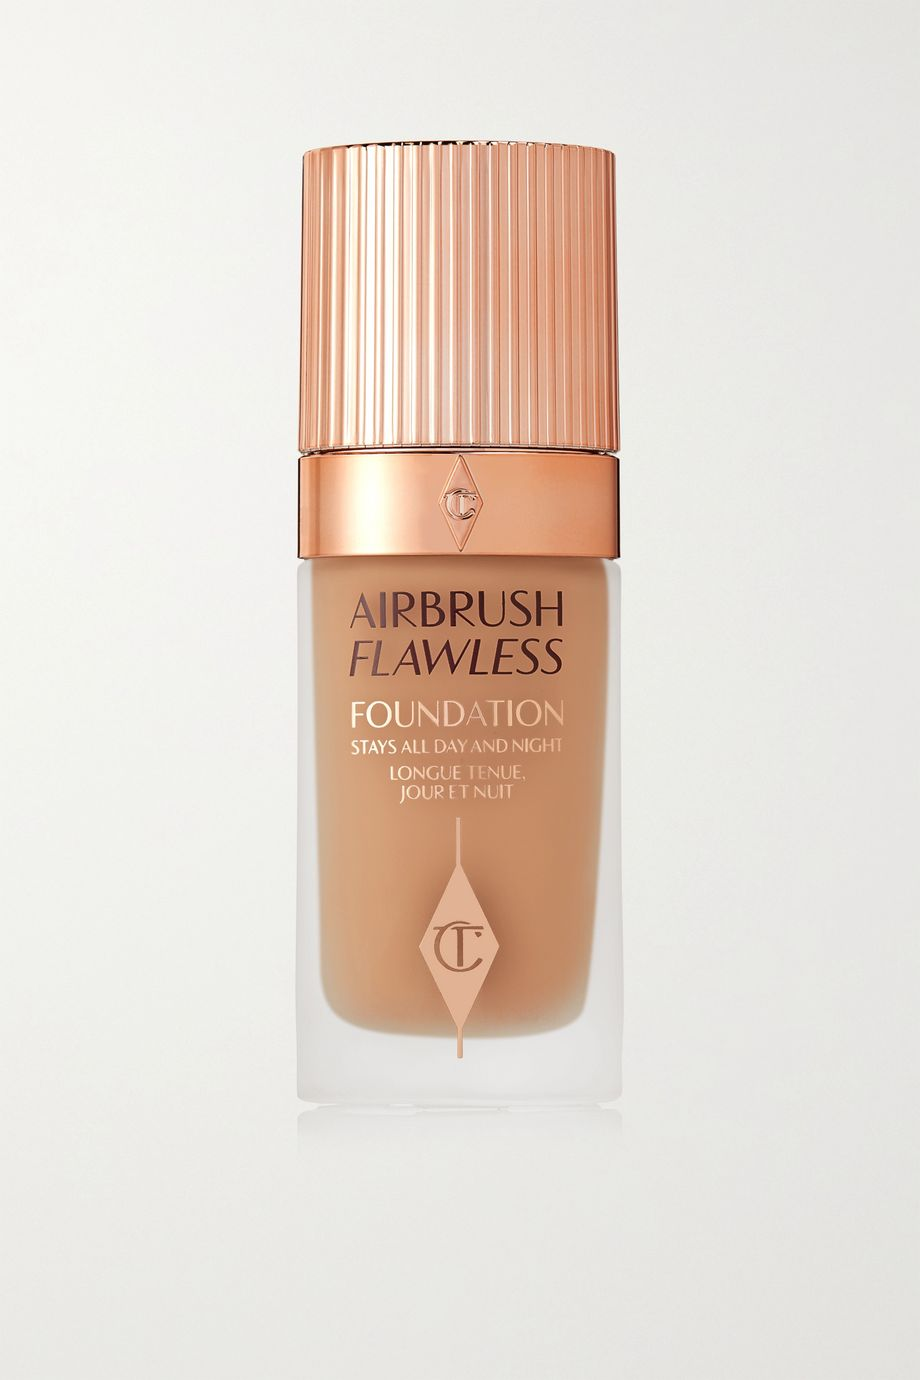 Charlotte Tilbury Airbrush Flawless Foundation - 7 Neutral, 30ml